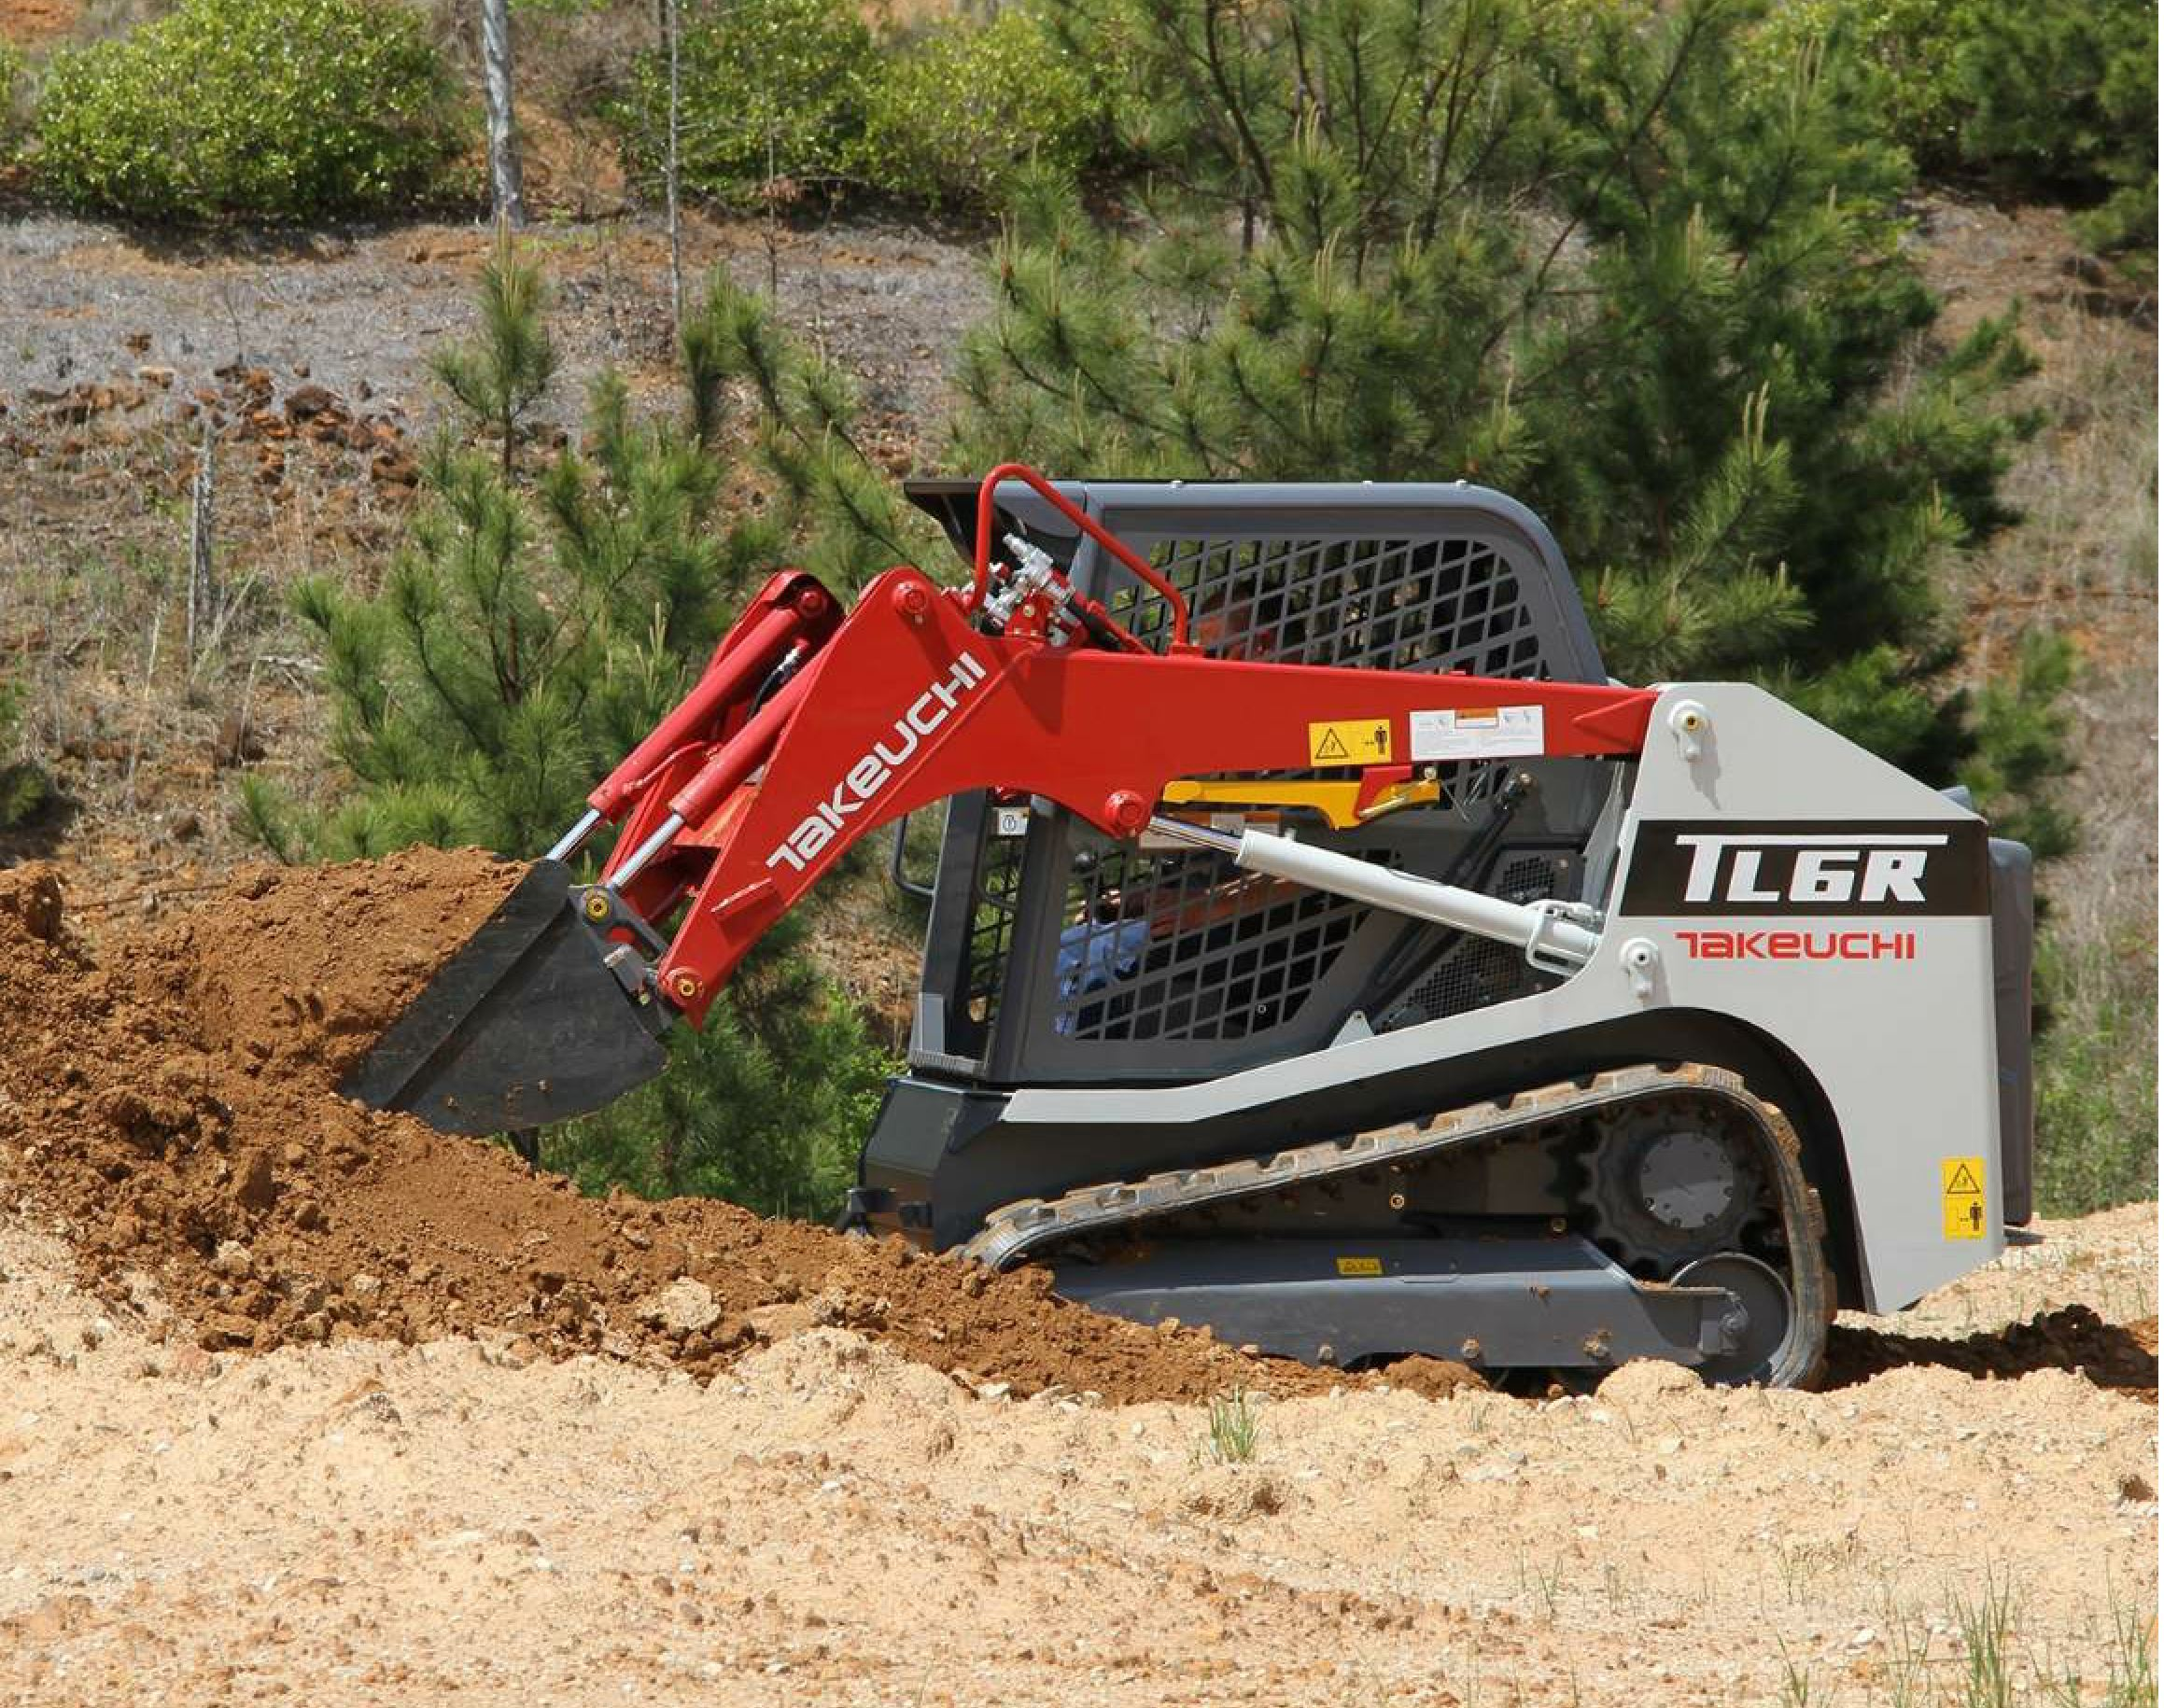 Takeuchi fleet management (TFM) system comes standard on the new TL6.